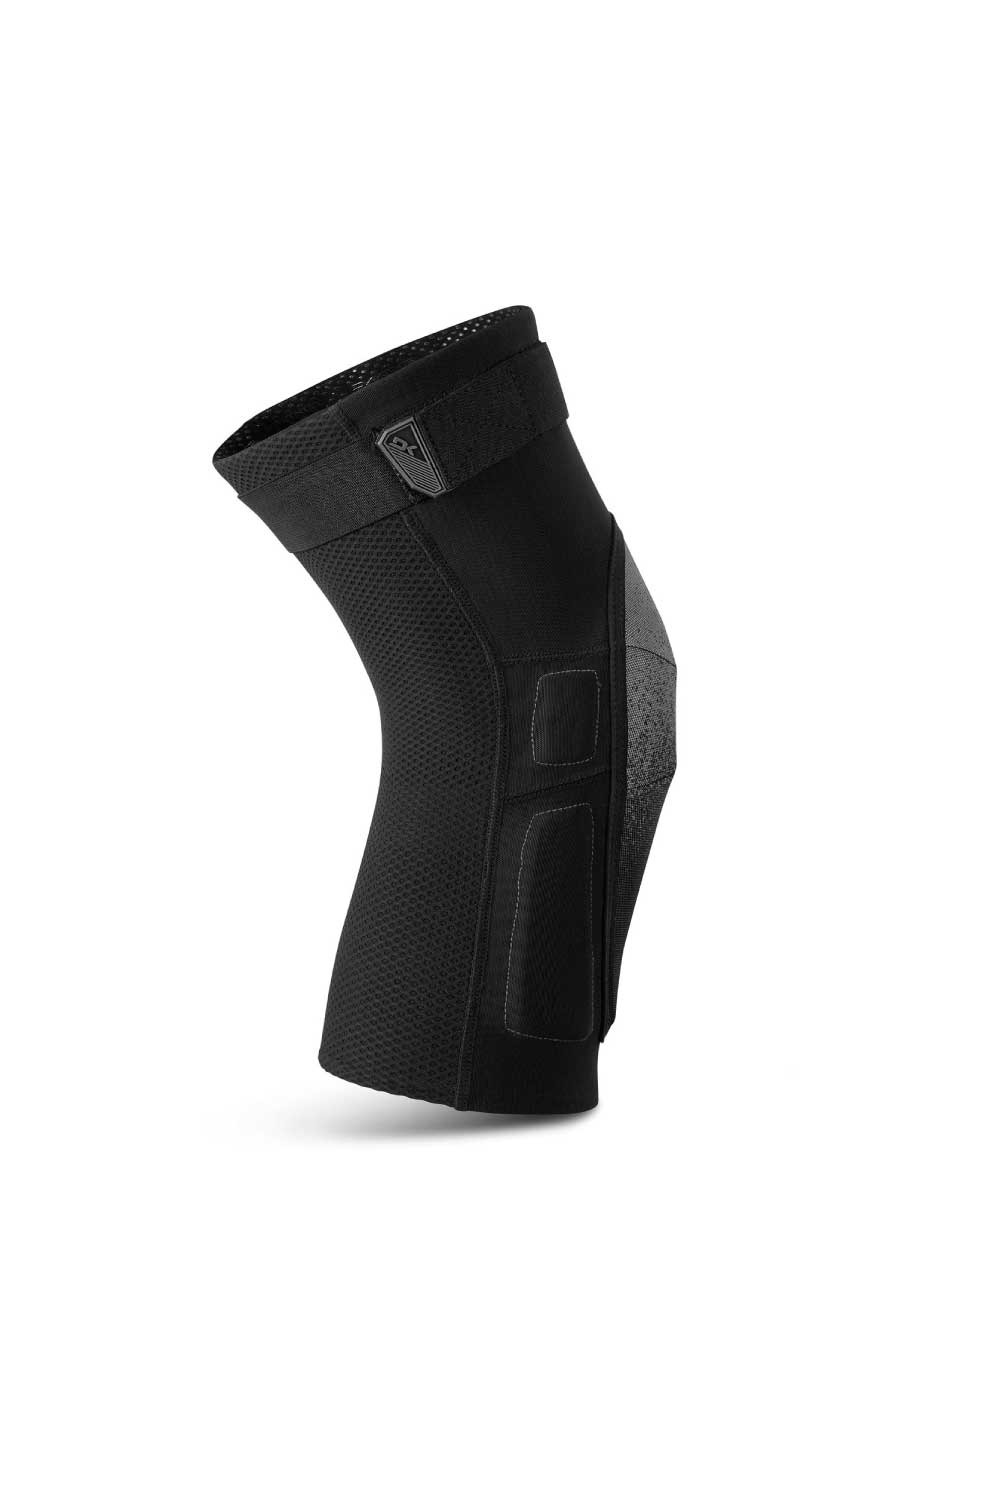 Dakine Slayer PRO MTB Bike Knee Pad